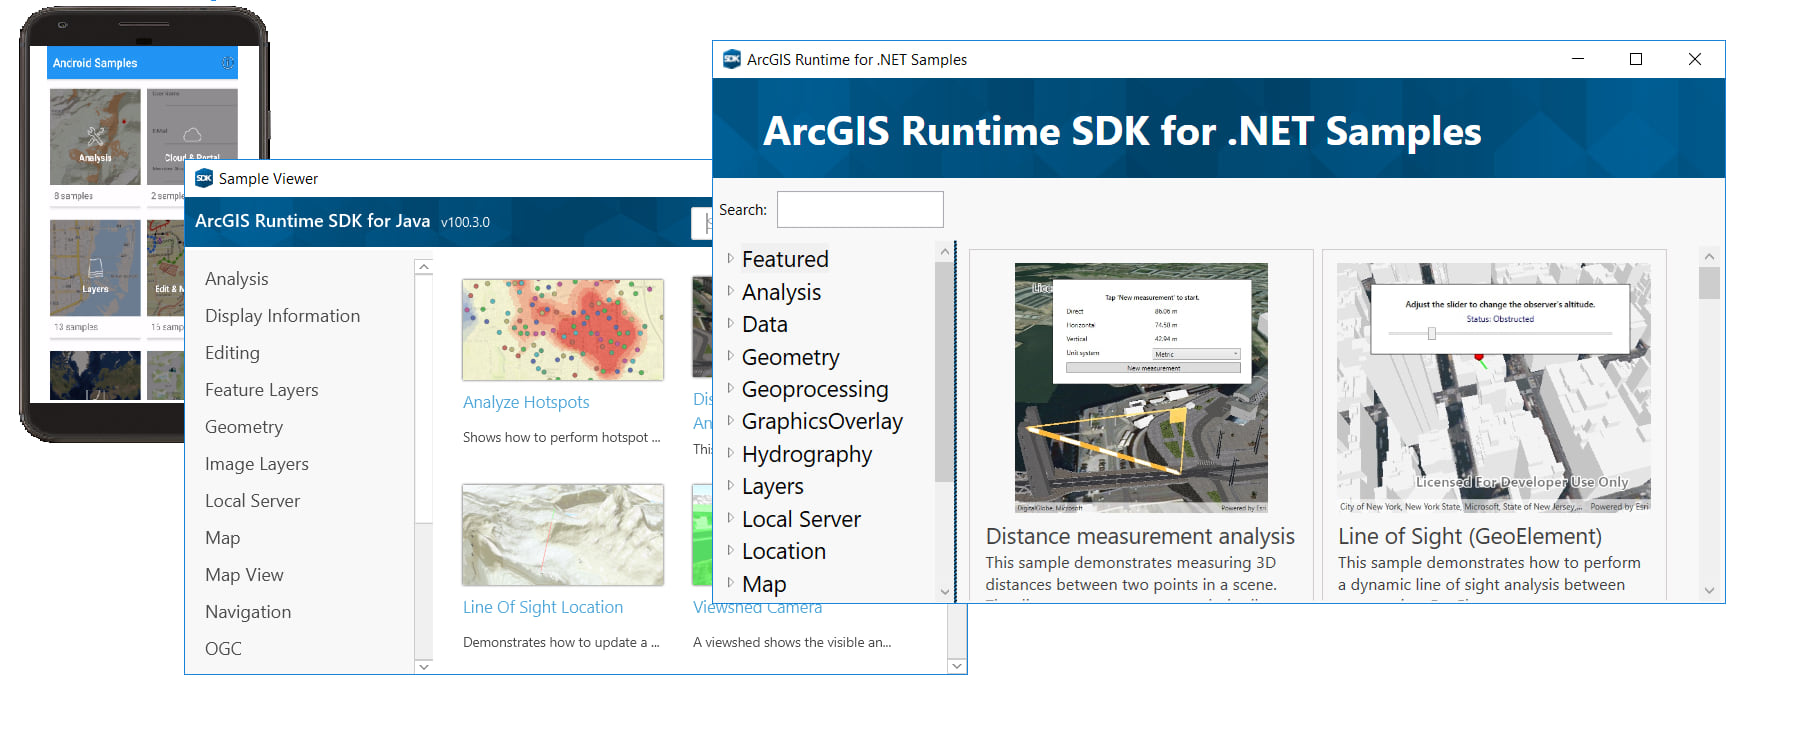 What's new in the ArcGIS Runtime SDK 100 3 release